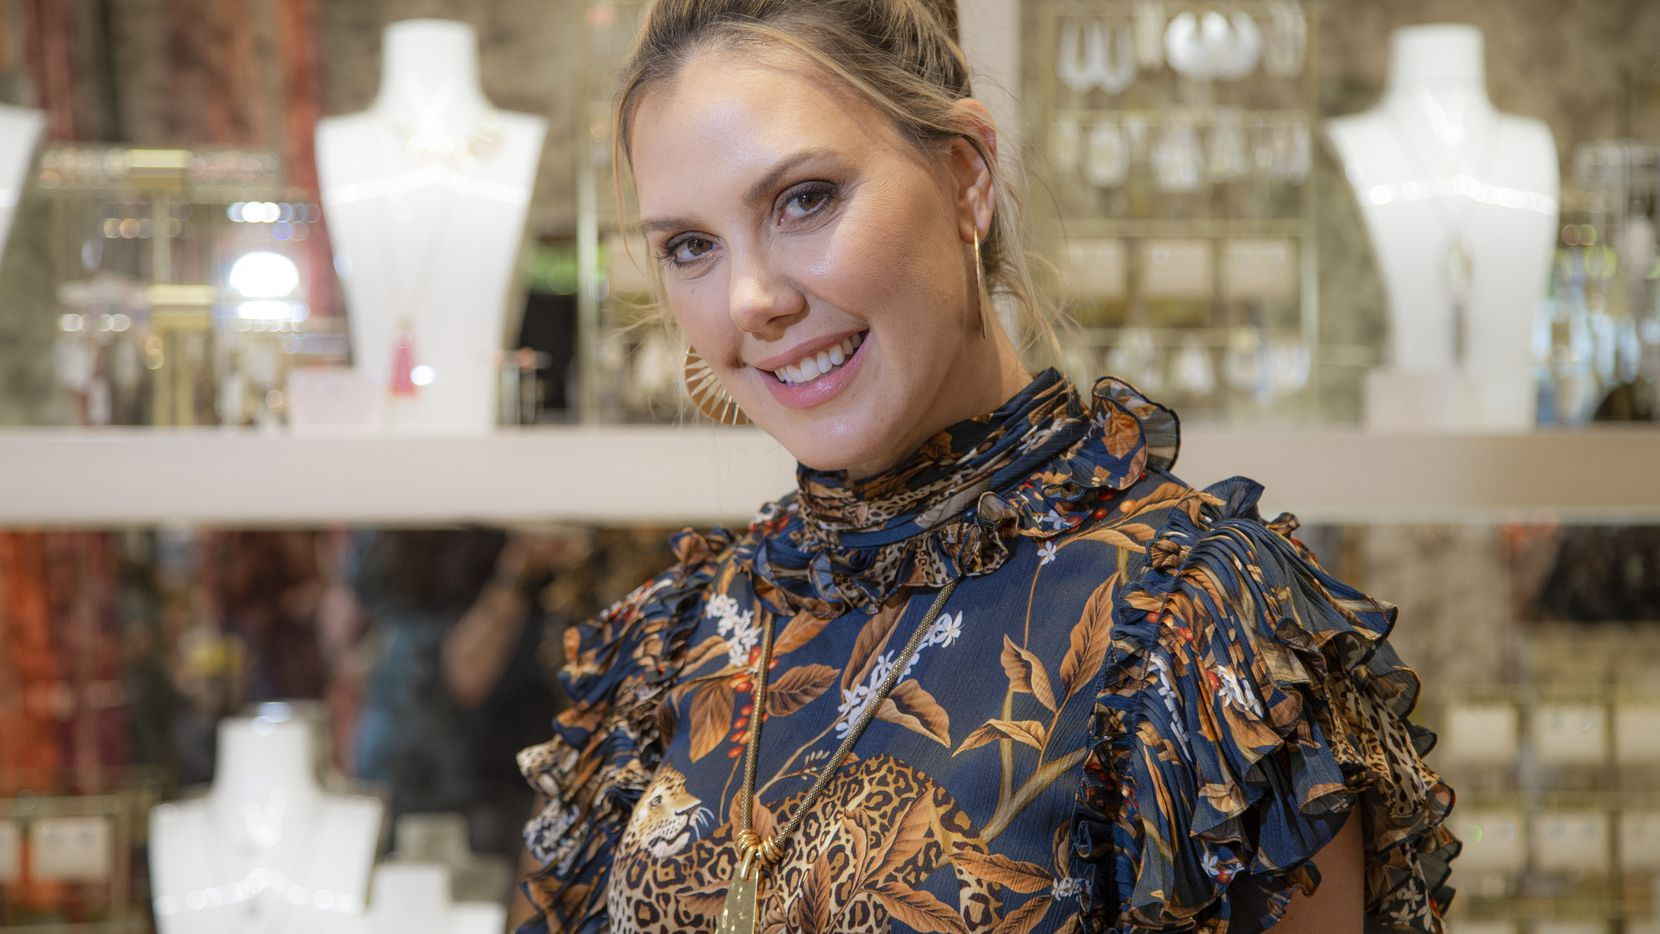 """Jewelry designer Kendra Scott will be a """"guest shark"""" on the ABC business show """"Shark Tank,"""" which lets budding entrepreneurs ask for advice and money from a panel of experienced millionaires and billionaires."""